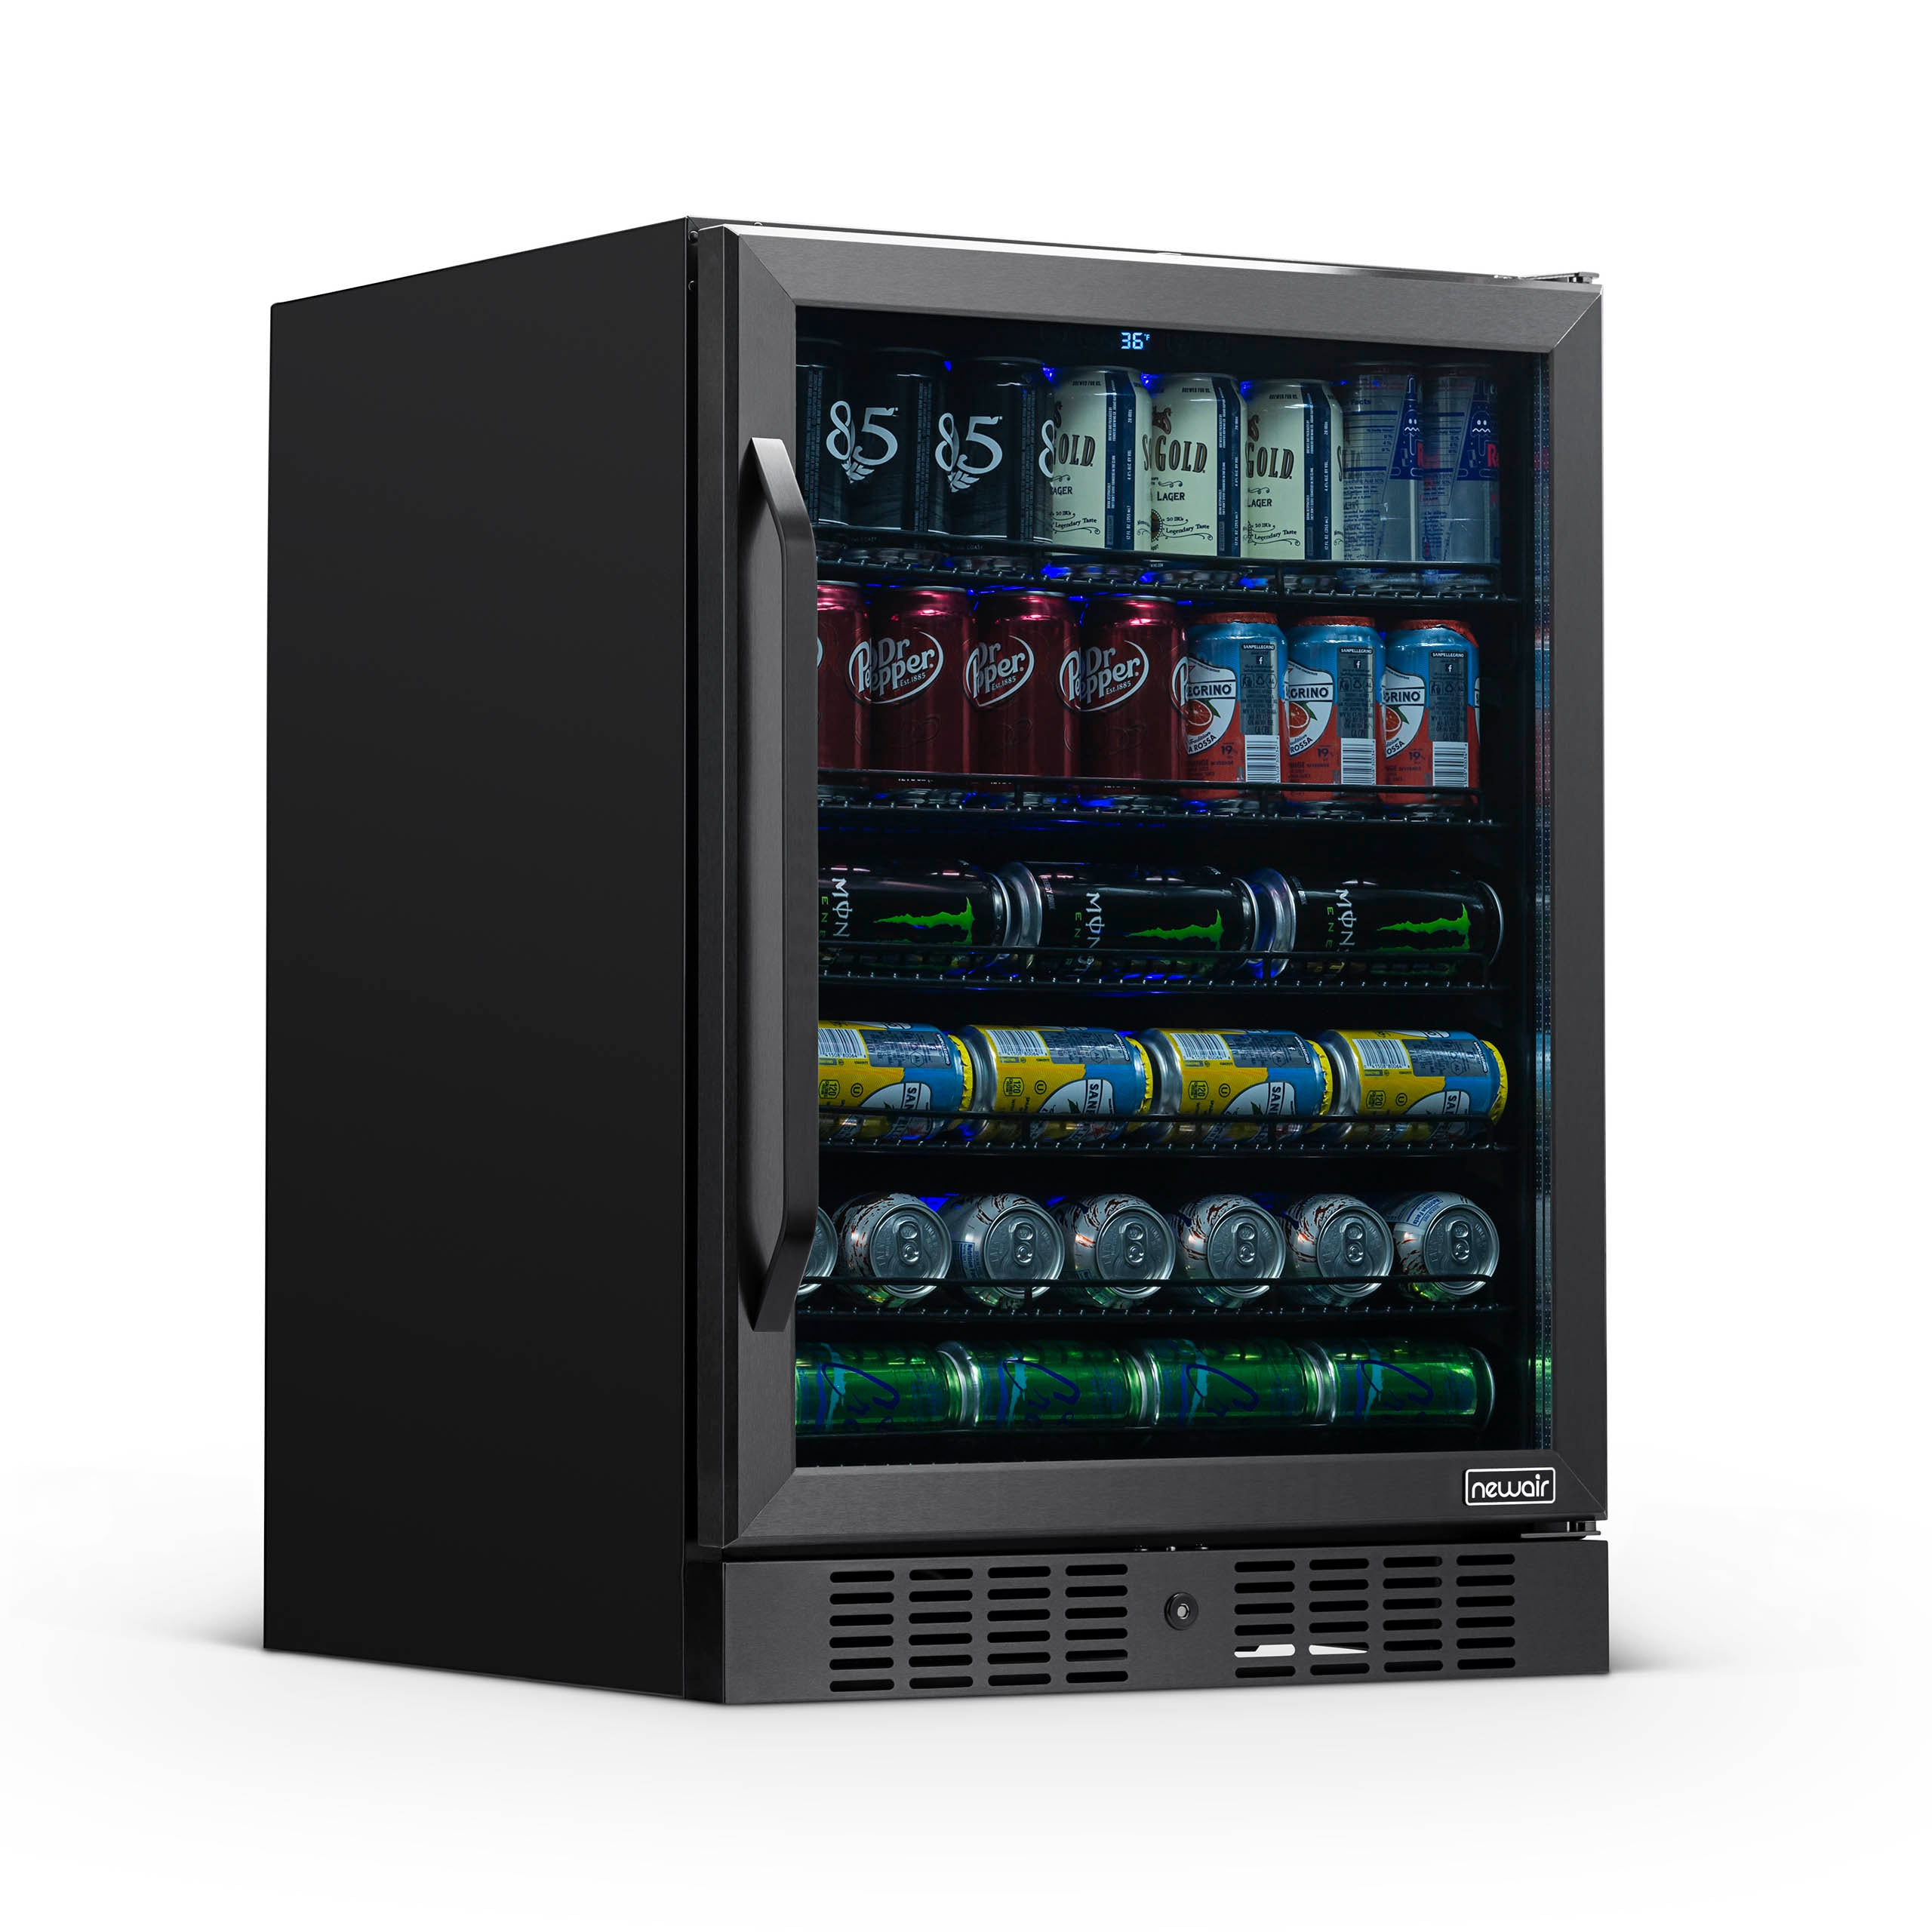 Newair Black Stainless Steel Beverage Fridge 24 Built In 177 Can Capacity